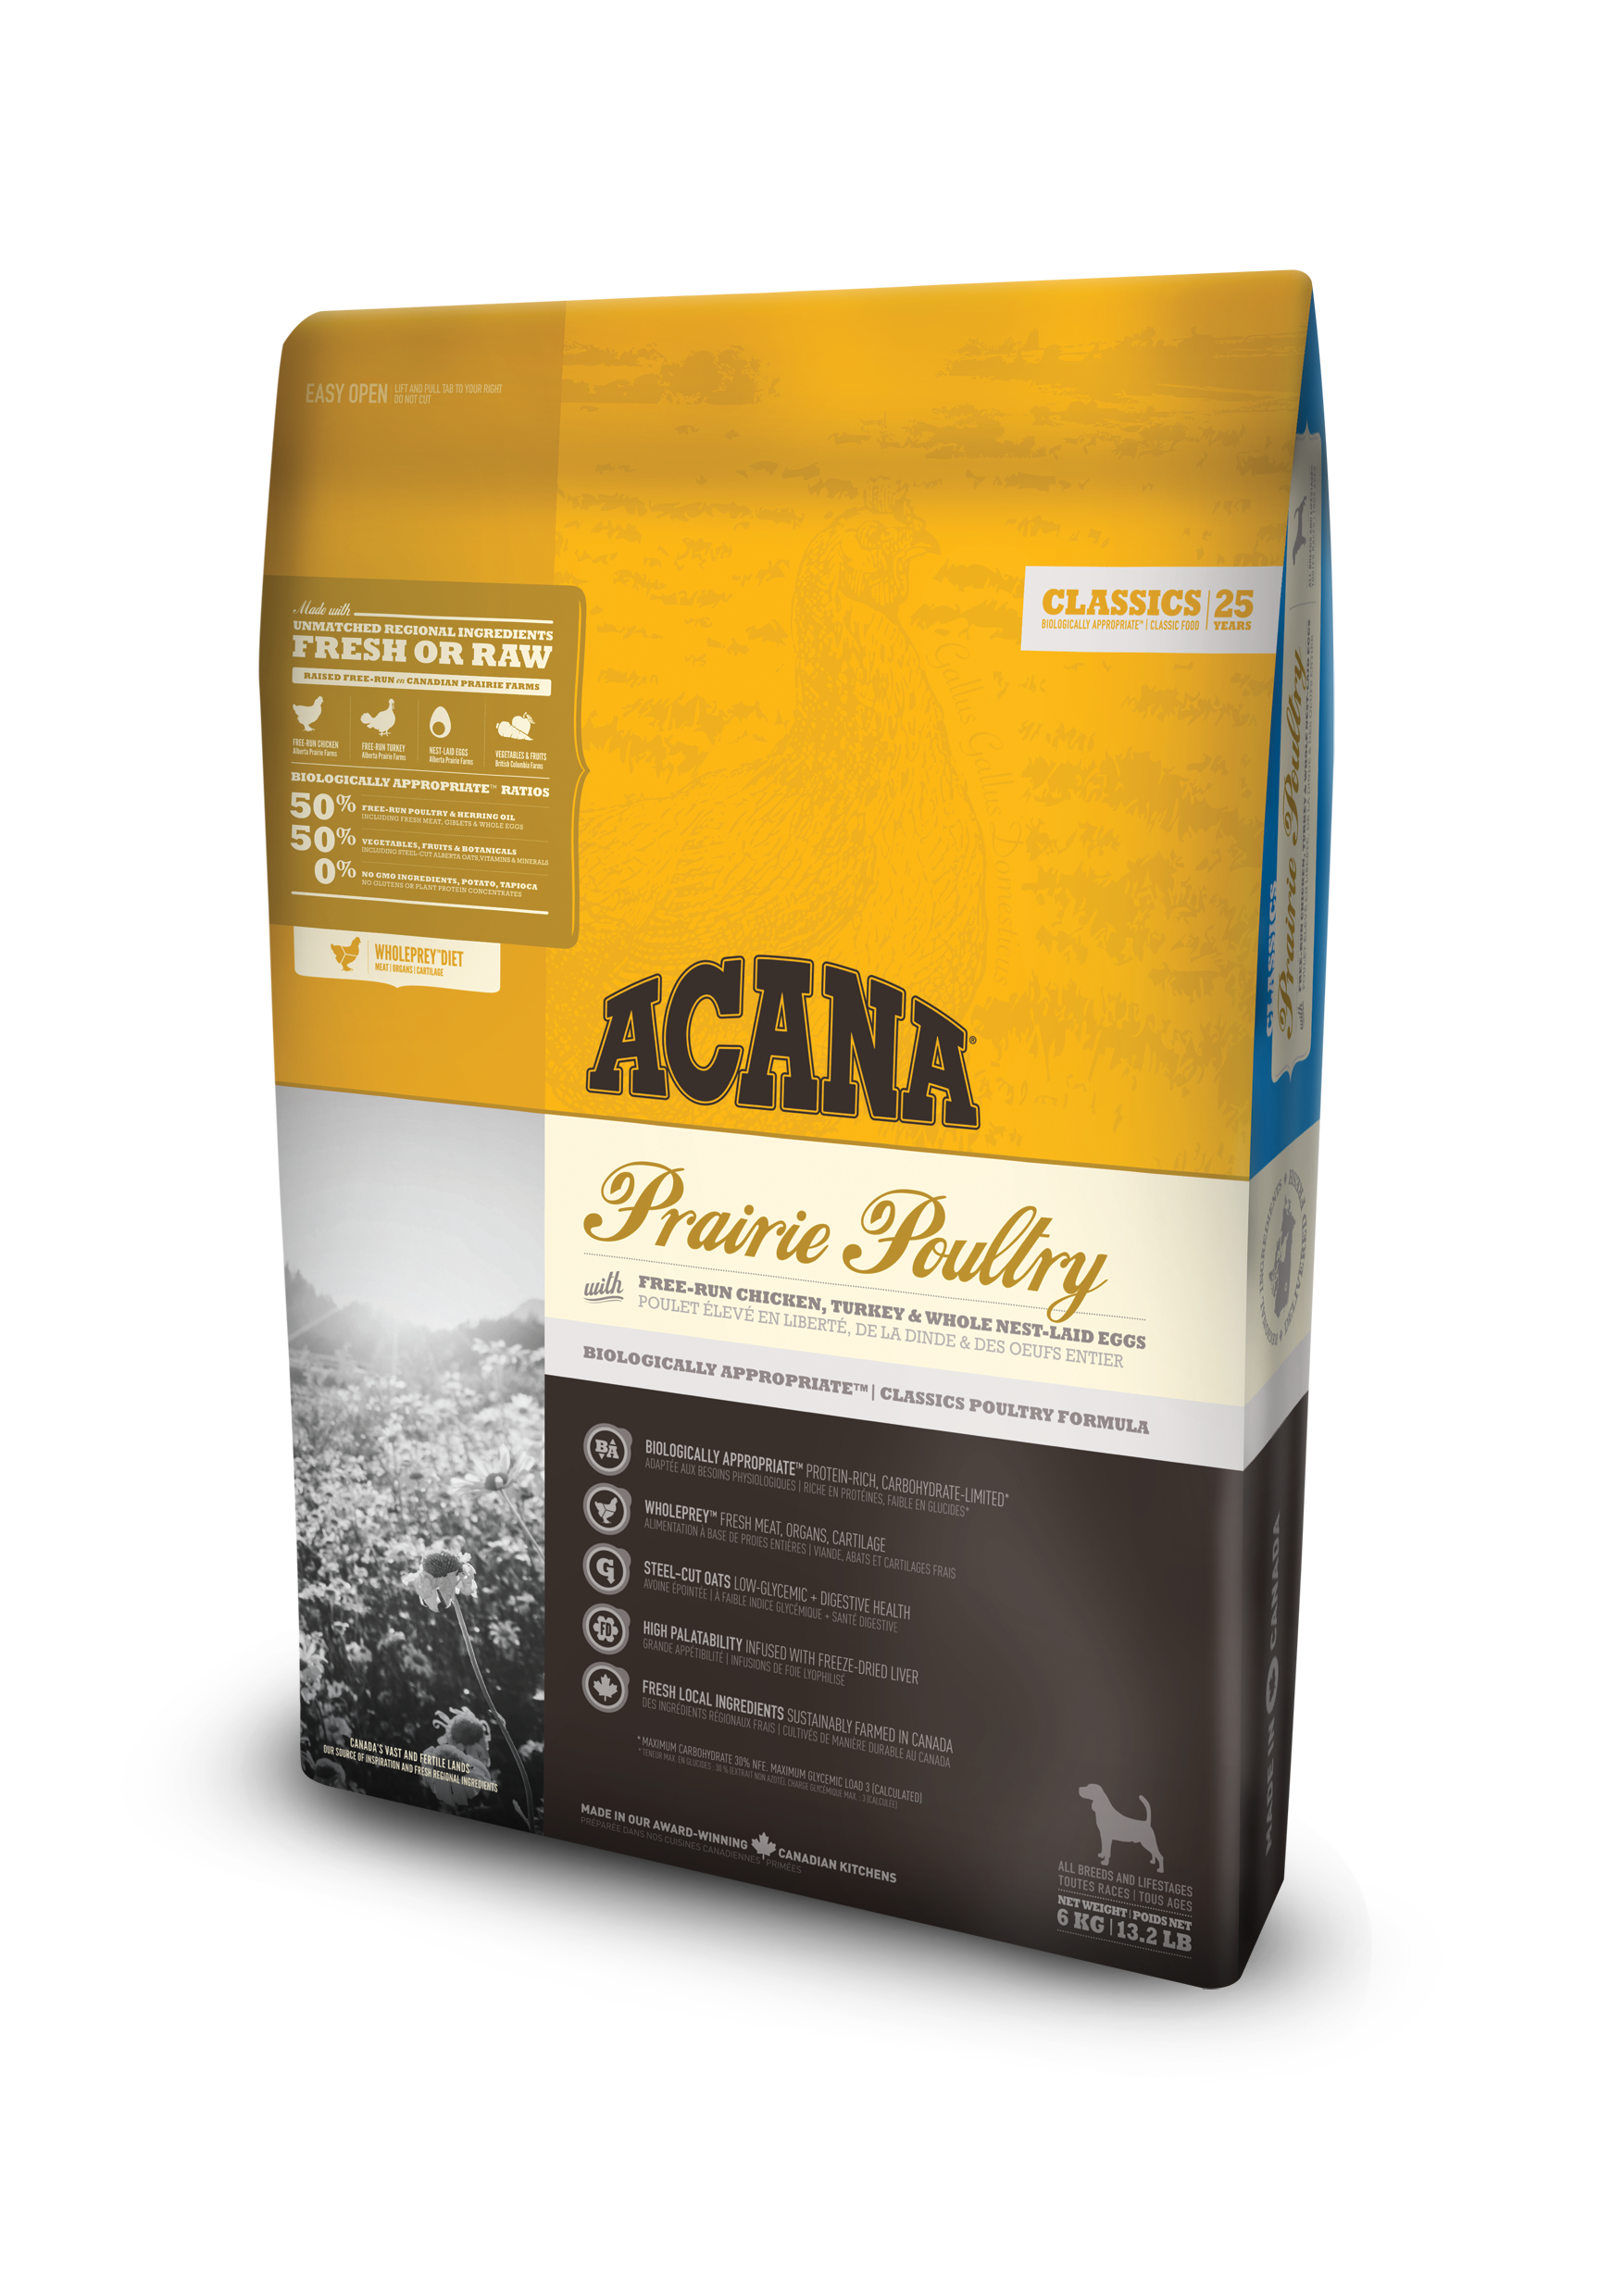 Acana Classic - Prairie Poultry